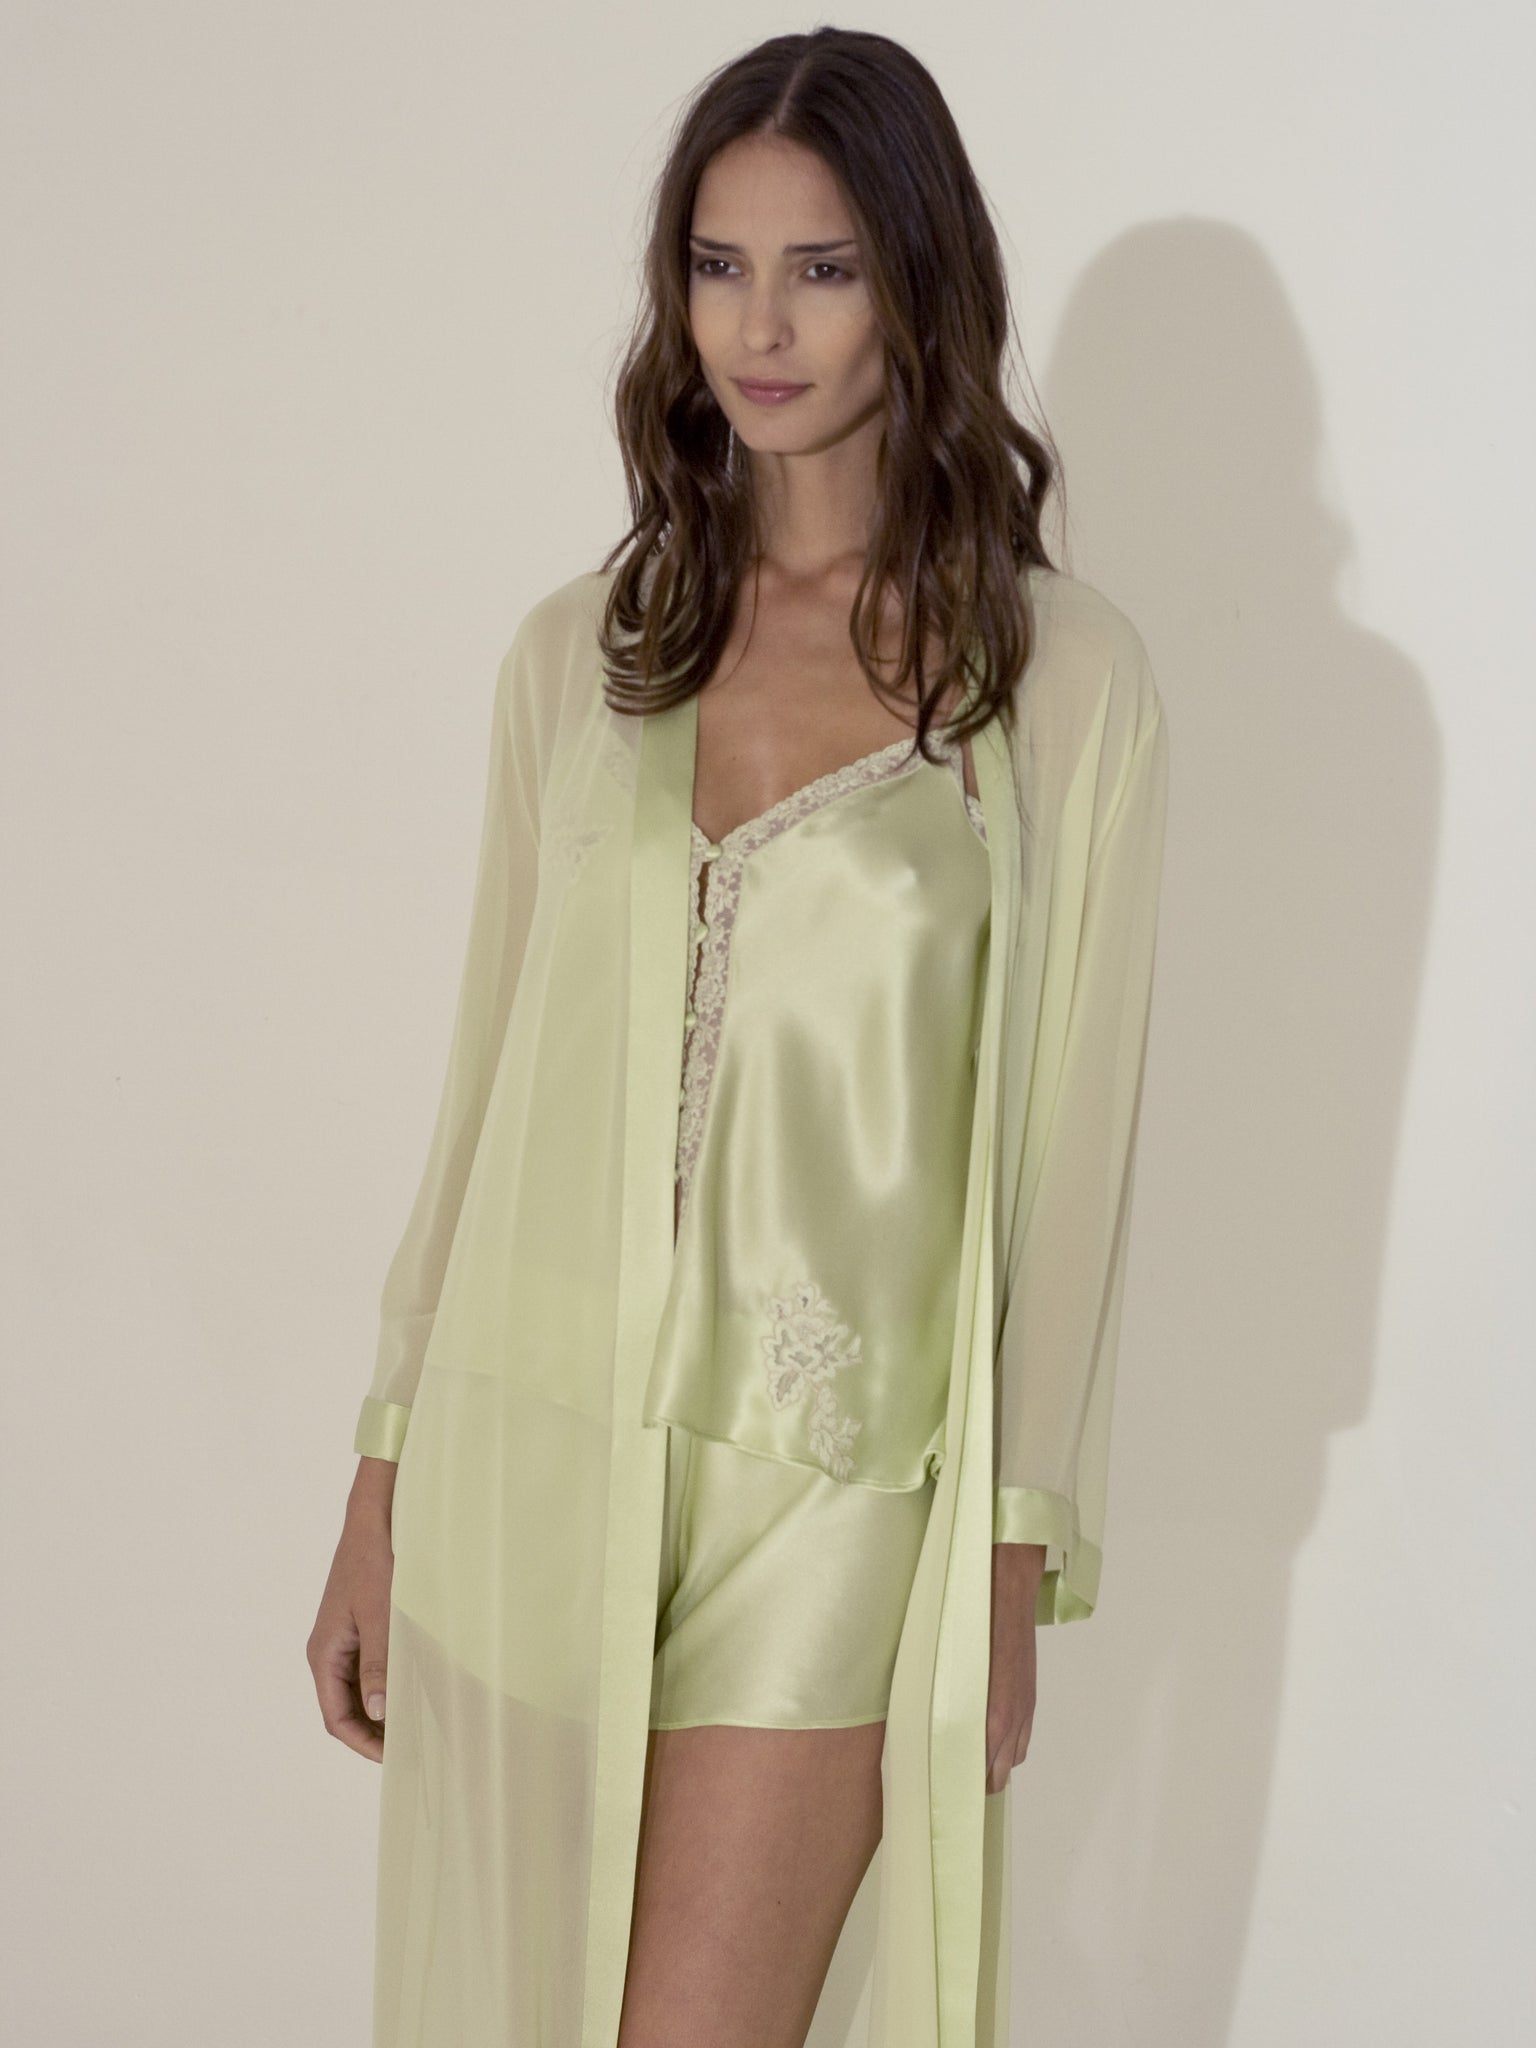 Silk Top & Shorts with Long Robe - Flora Lastraioli Shop Online